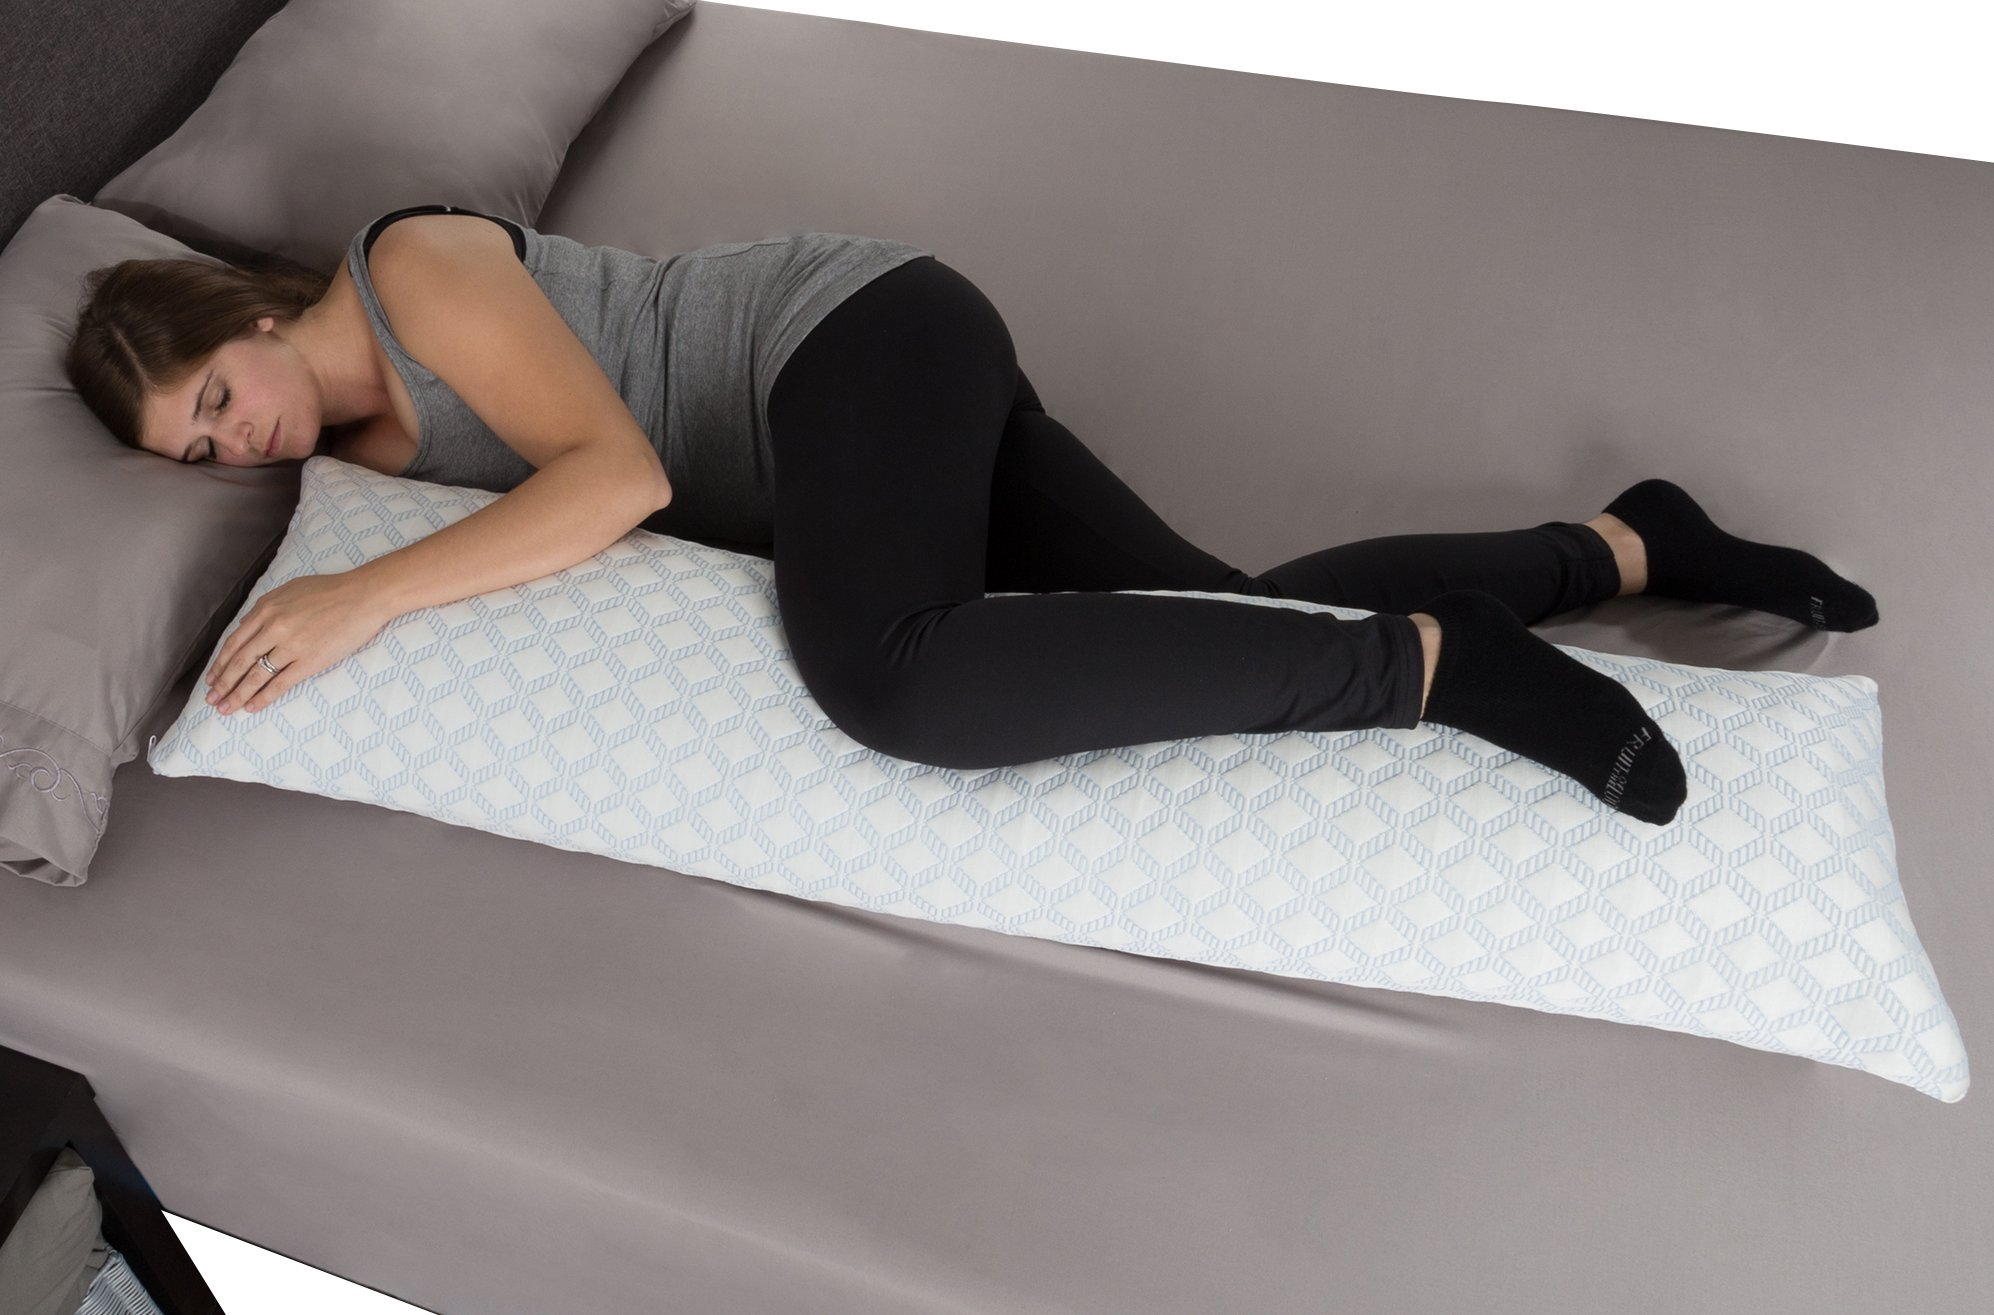 Lavish Home Memory Foam Body Pillow- Stay Cool Cover Specially Designed Cooling Relief for Side, Stomach, Back Sleepers and Pregnant Women by